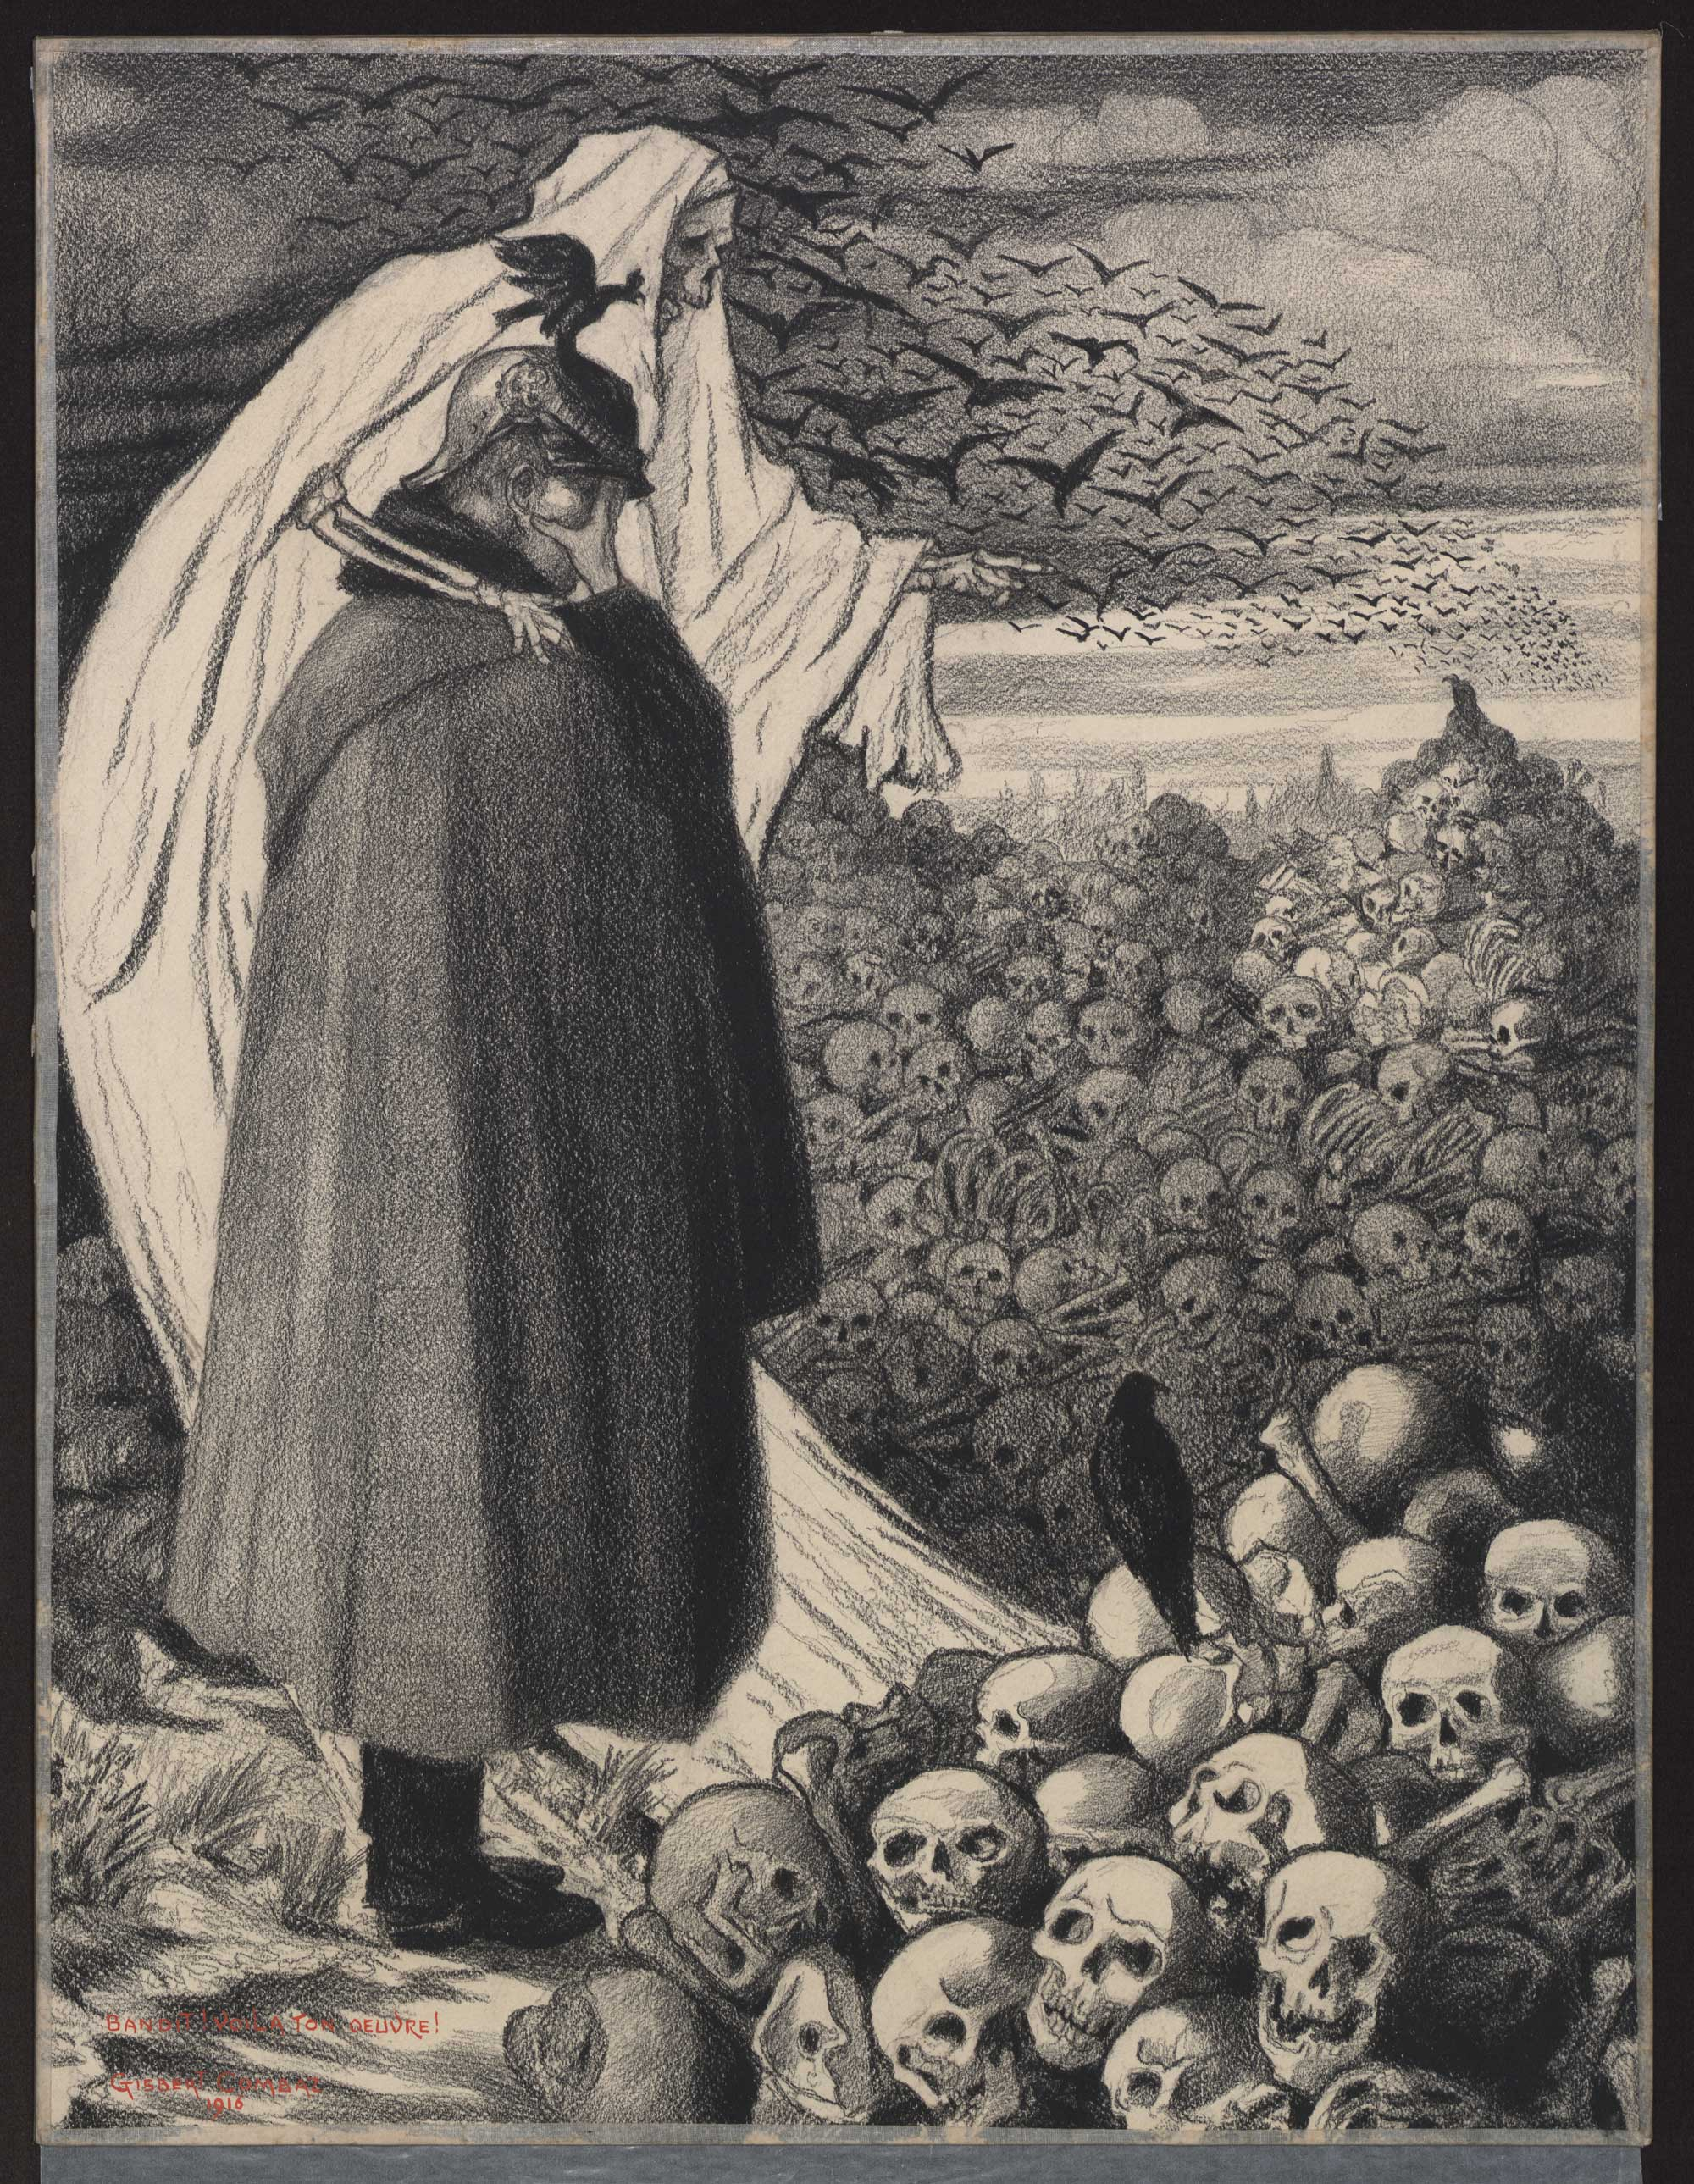 'Villain! This is your work!': lithograph by Belgian artist Gisbert Combaz (1869-1941). It depicts Death showing Emperor William II a mass grave.